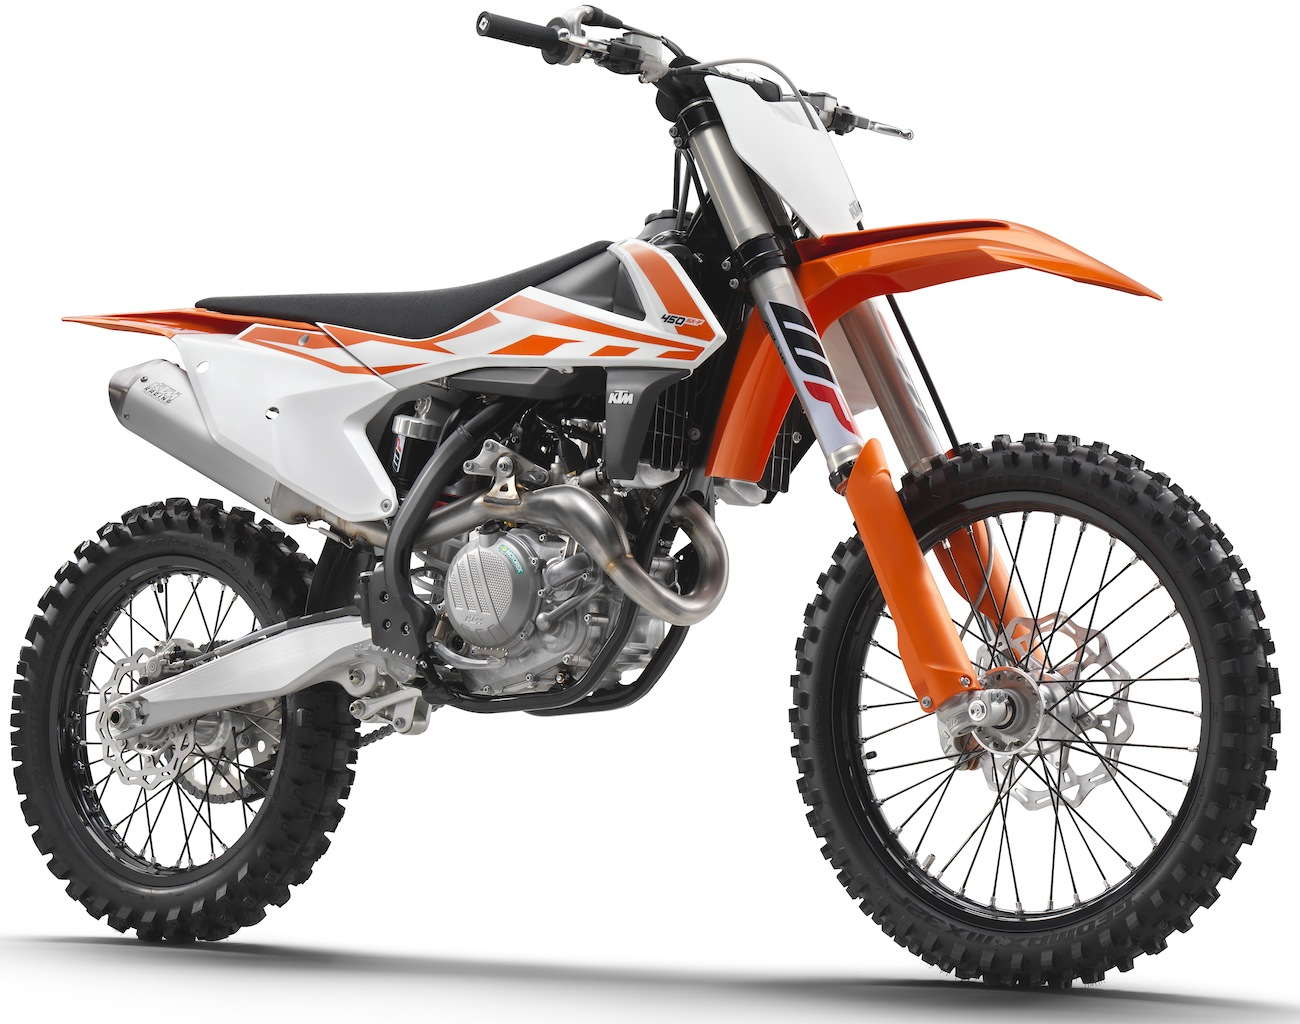 FIRST LOOK! UP CLOSE WITH THE 2017 KTM'S | Motocross Action Magazine